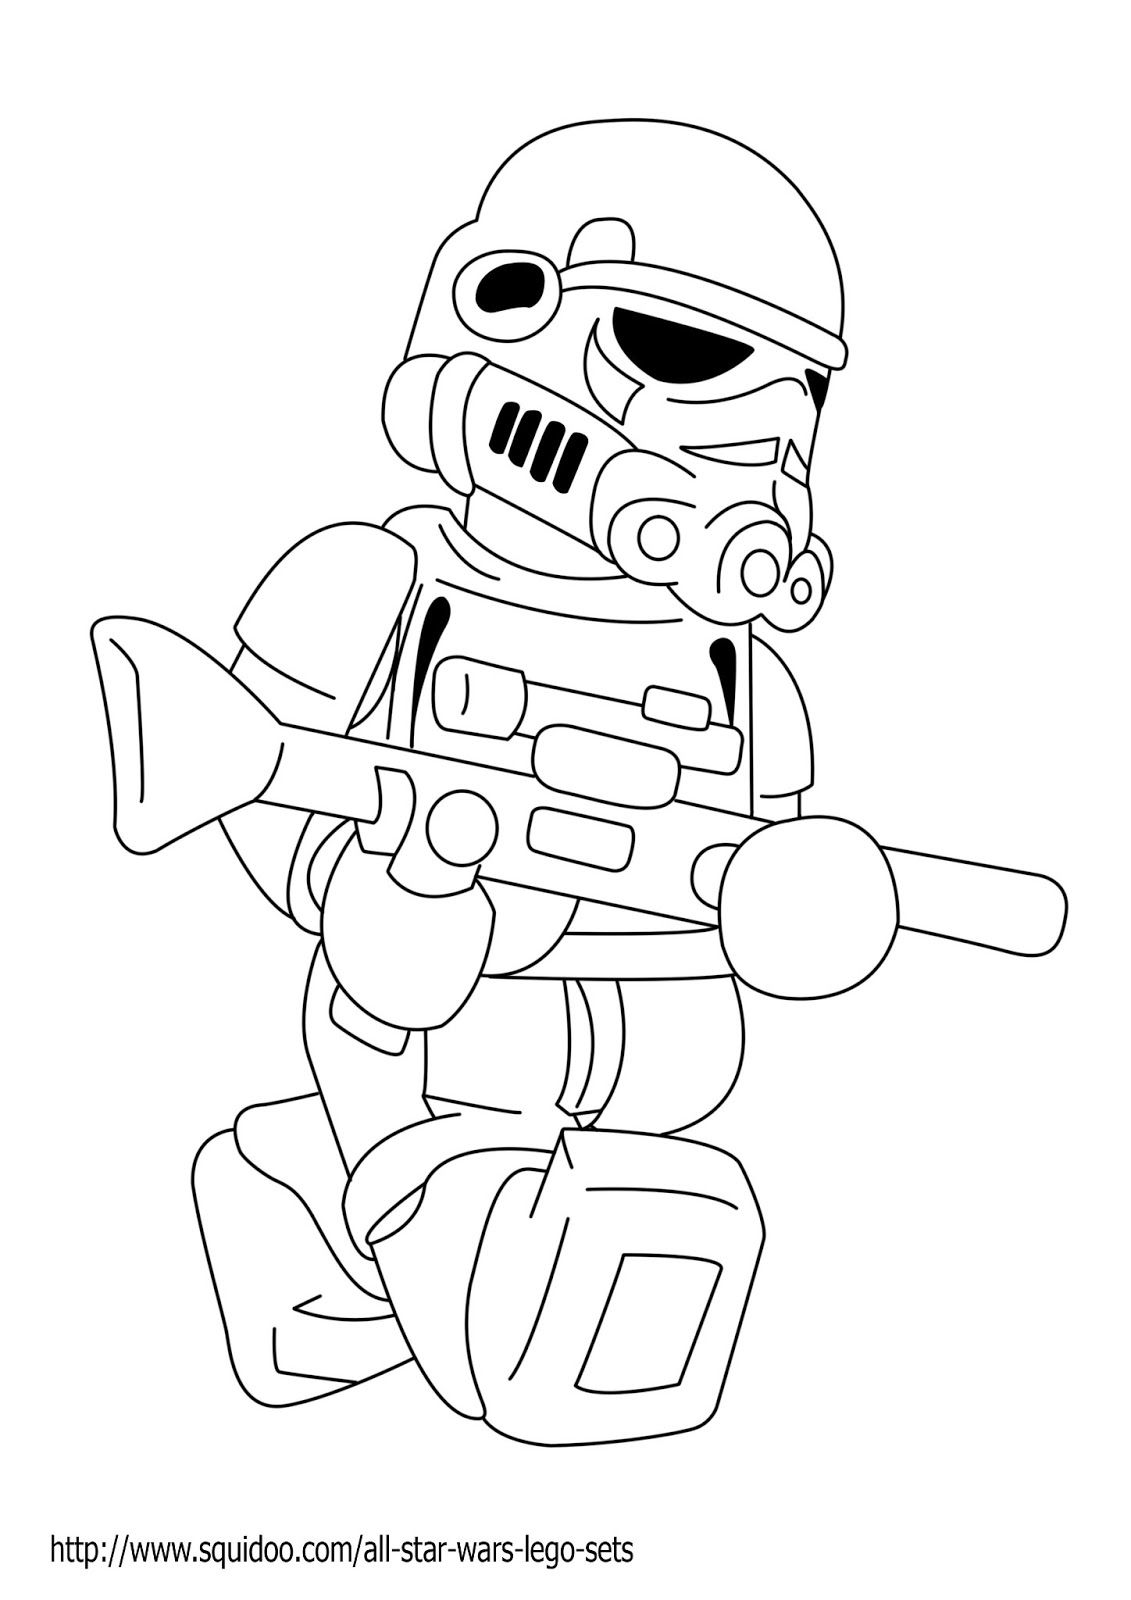 Lego Coloring Pages To Print Star Wars Lego Coloring Pages Star Wars Coloring Book Lego Coloring